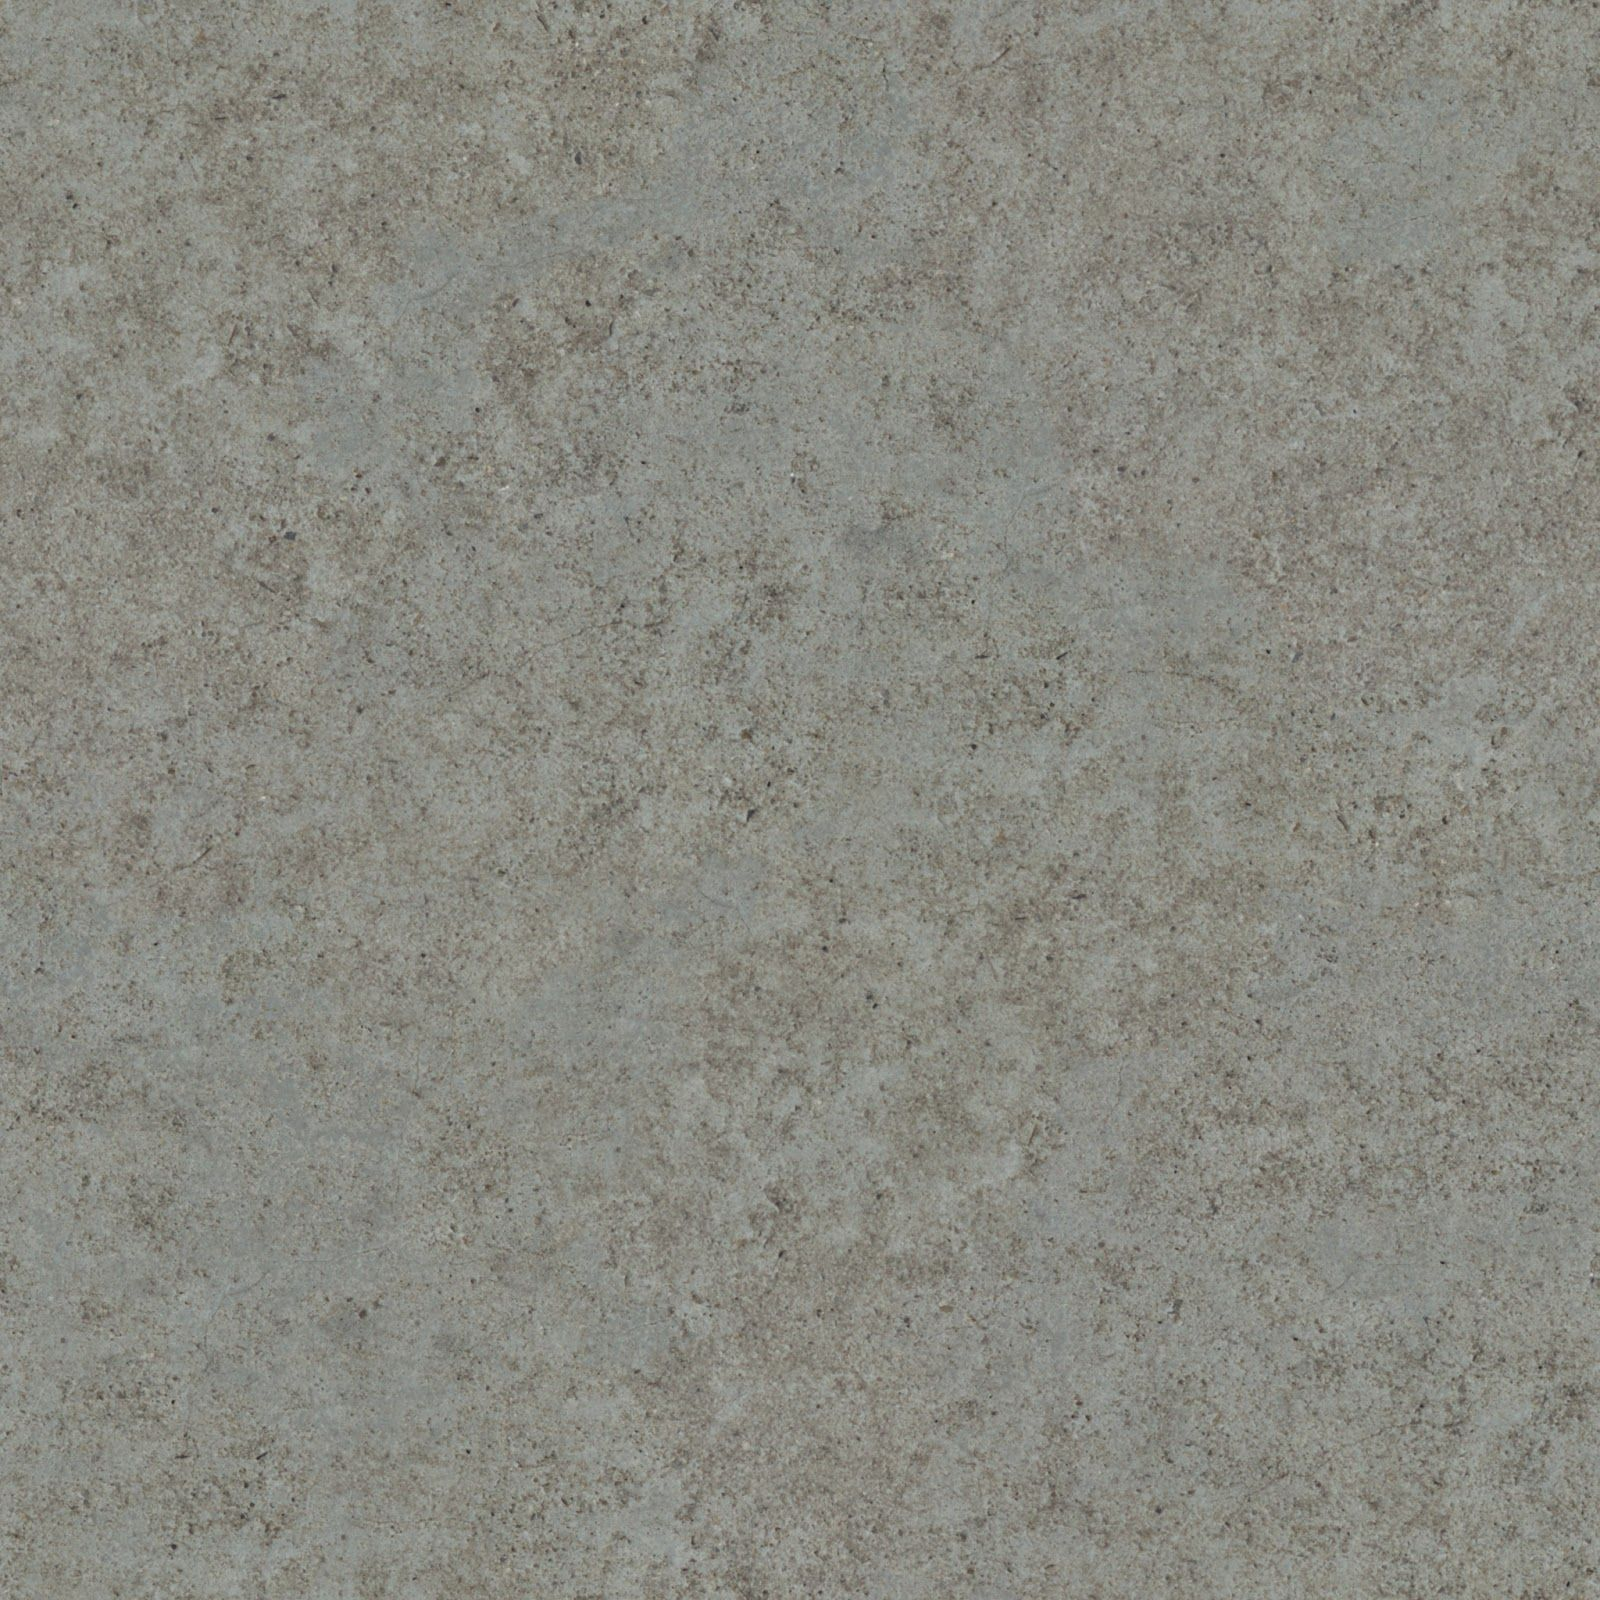 Concrete 8 seamless granite wall smooth pillar texture for Smooth concrete texture